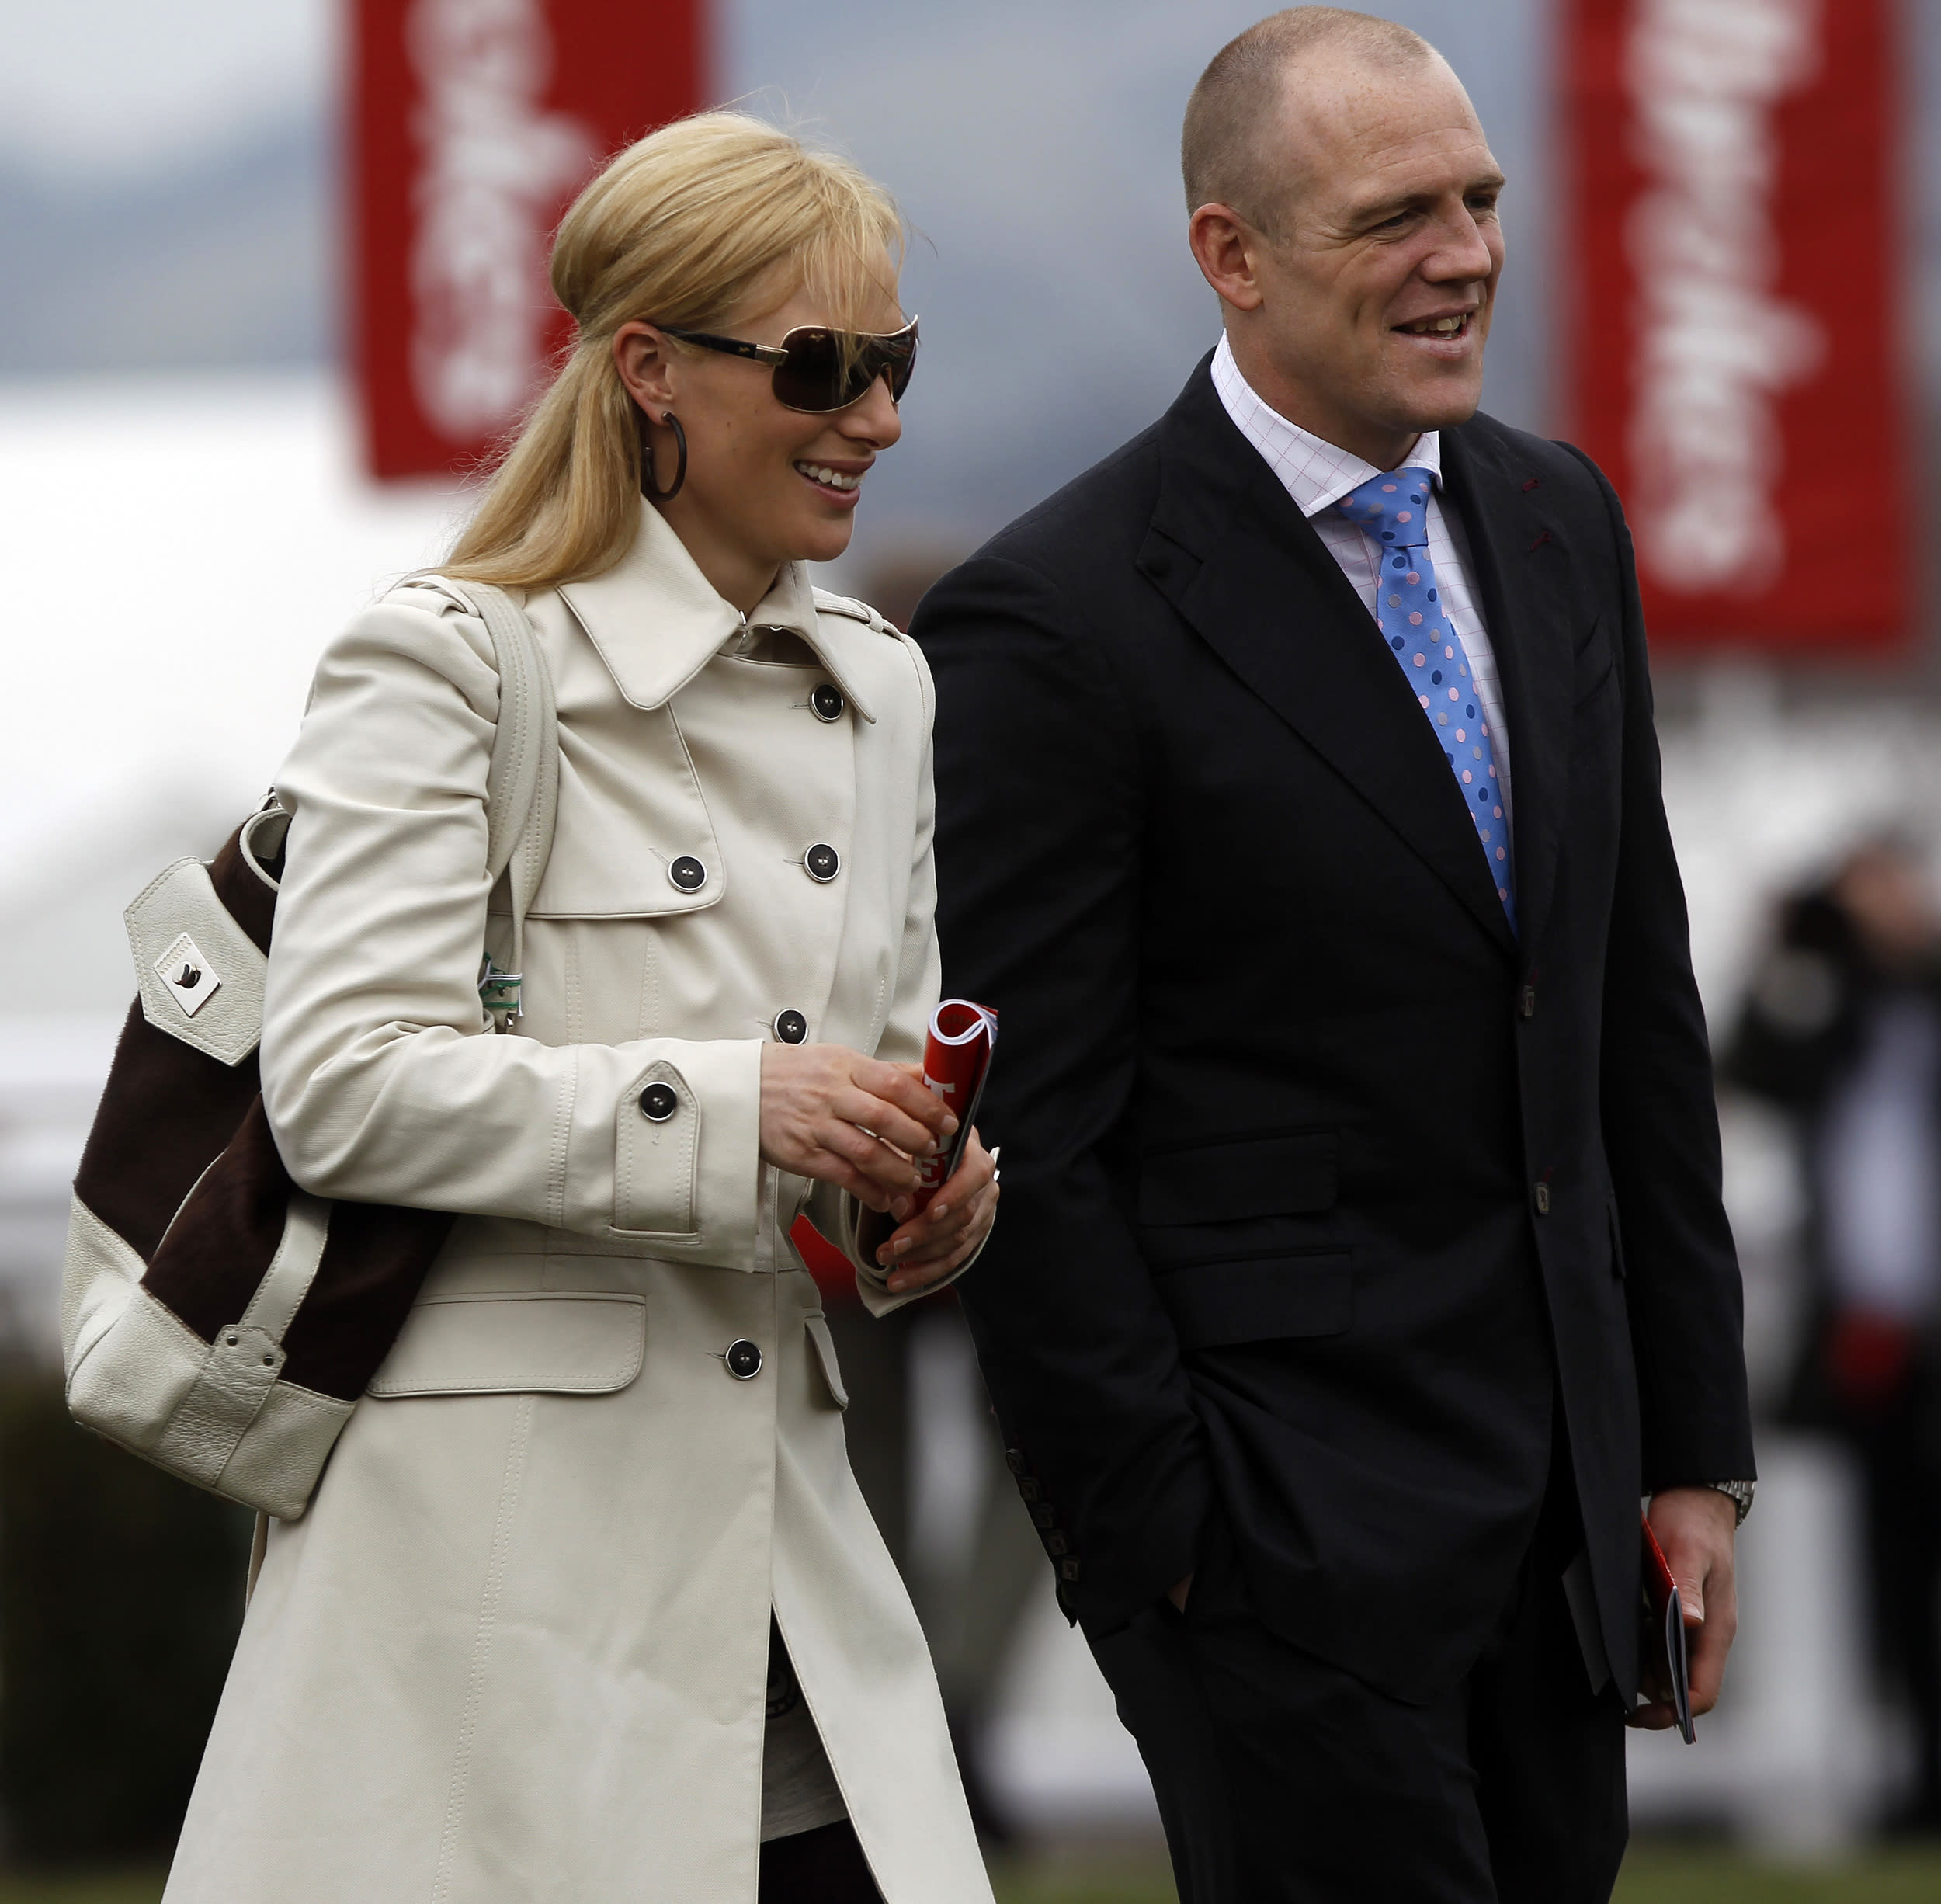 Britain's Zara Phillips (L) and her boyfriend England's rugby player Mike Tindall attend The Cheltenham Festival horse racing meet in Gloucestershire, western England March 18, 2010.   REUTERS/ Eddie Keogh (BRITAIN - Tags: SPORT HORSE RACING ROYALS)